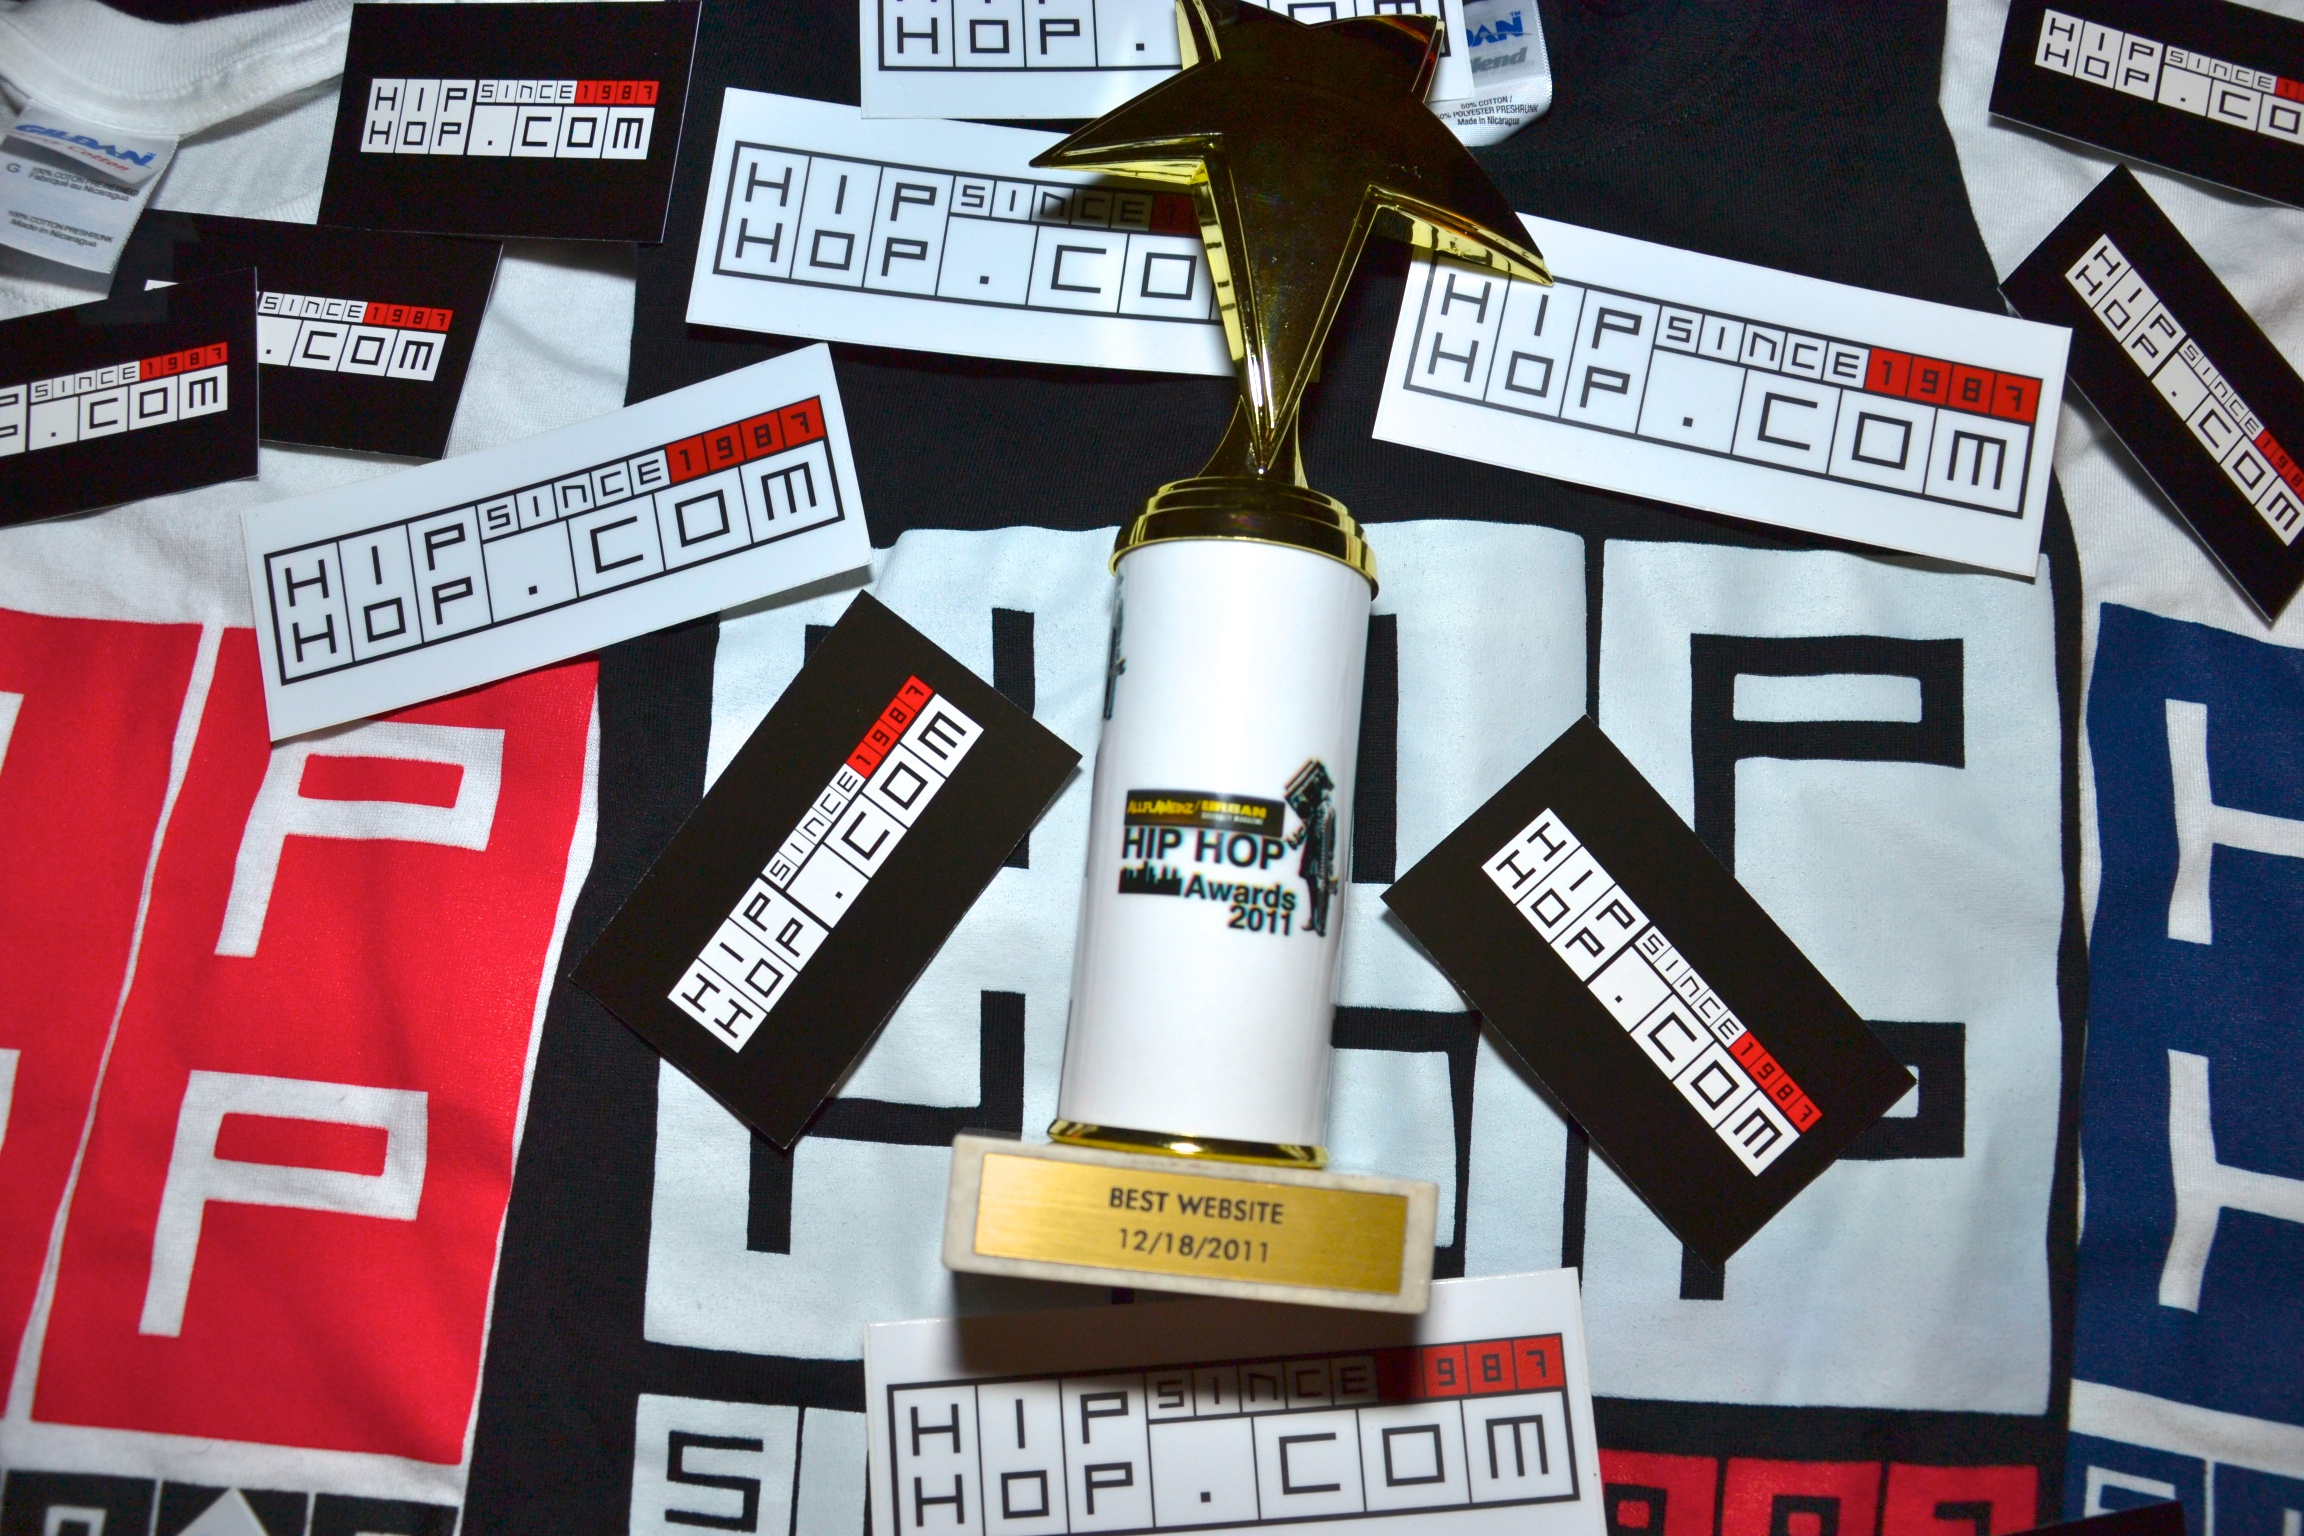 HHS1987-Award-1 2011 Philly Hip Hop Awards Winners